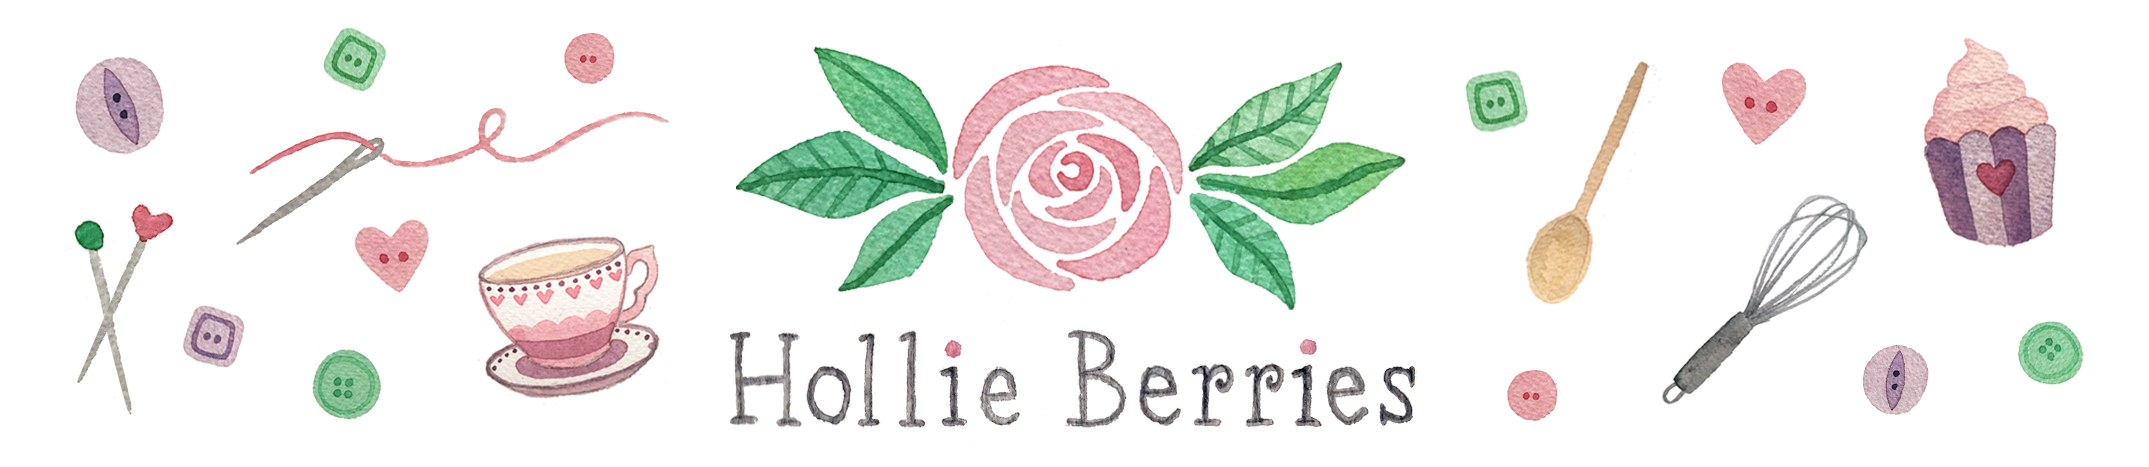 Hollie Berries